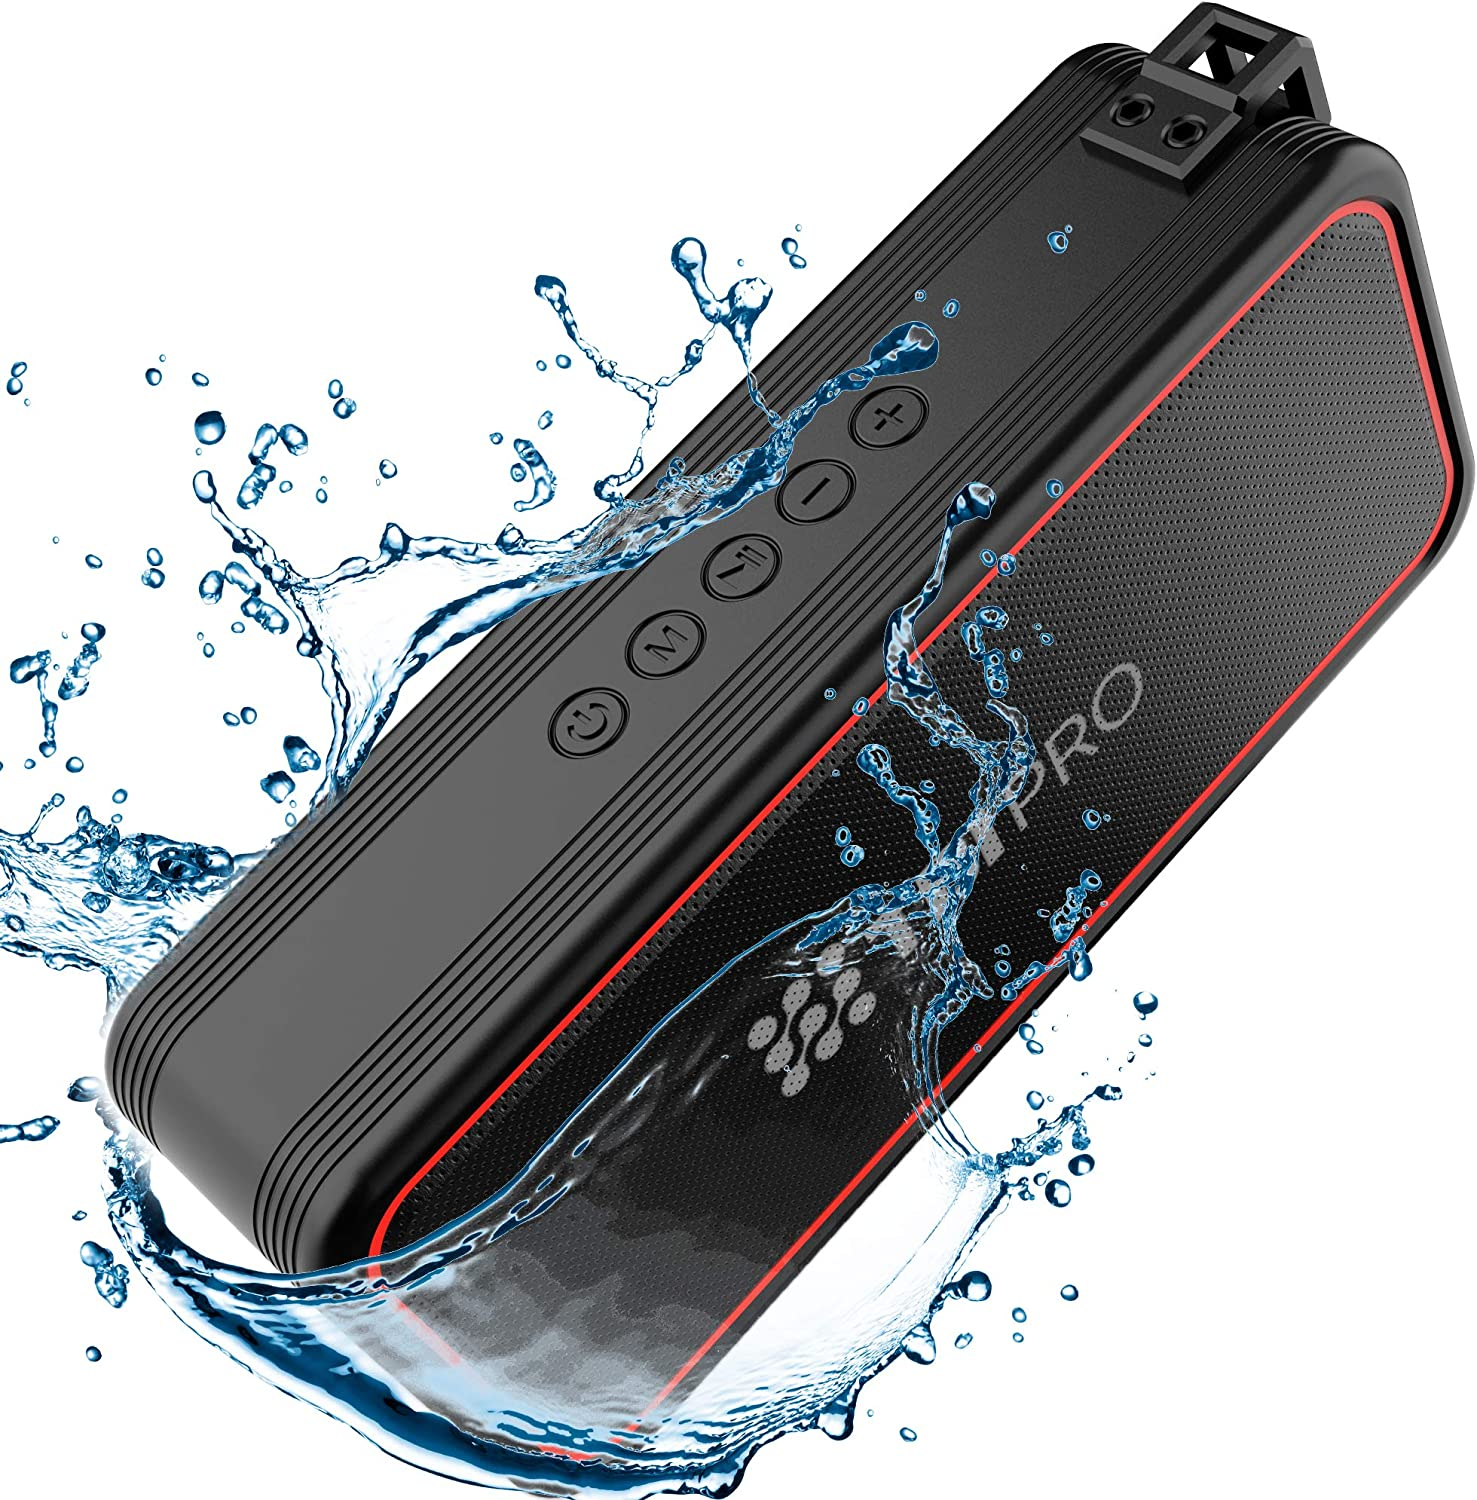 Amazon Com Tbi Pro Powerful 20w Bluetooth Speaker Model 2020 Ipx7 Waterproof 24 Hours Battery Portable Indoor Outdoor Deep Bass Wireless Speakers With Mic Loud True Stereo Sound